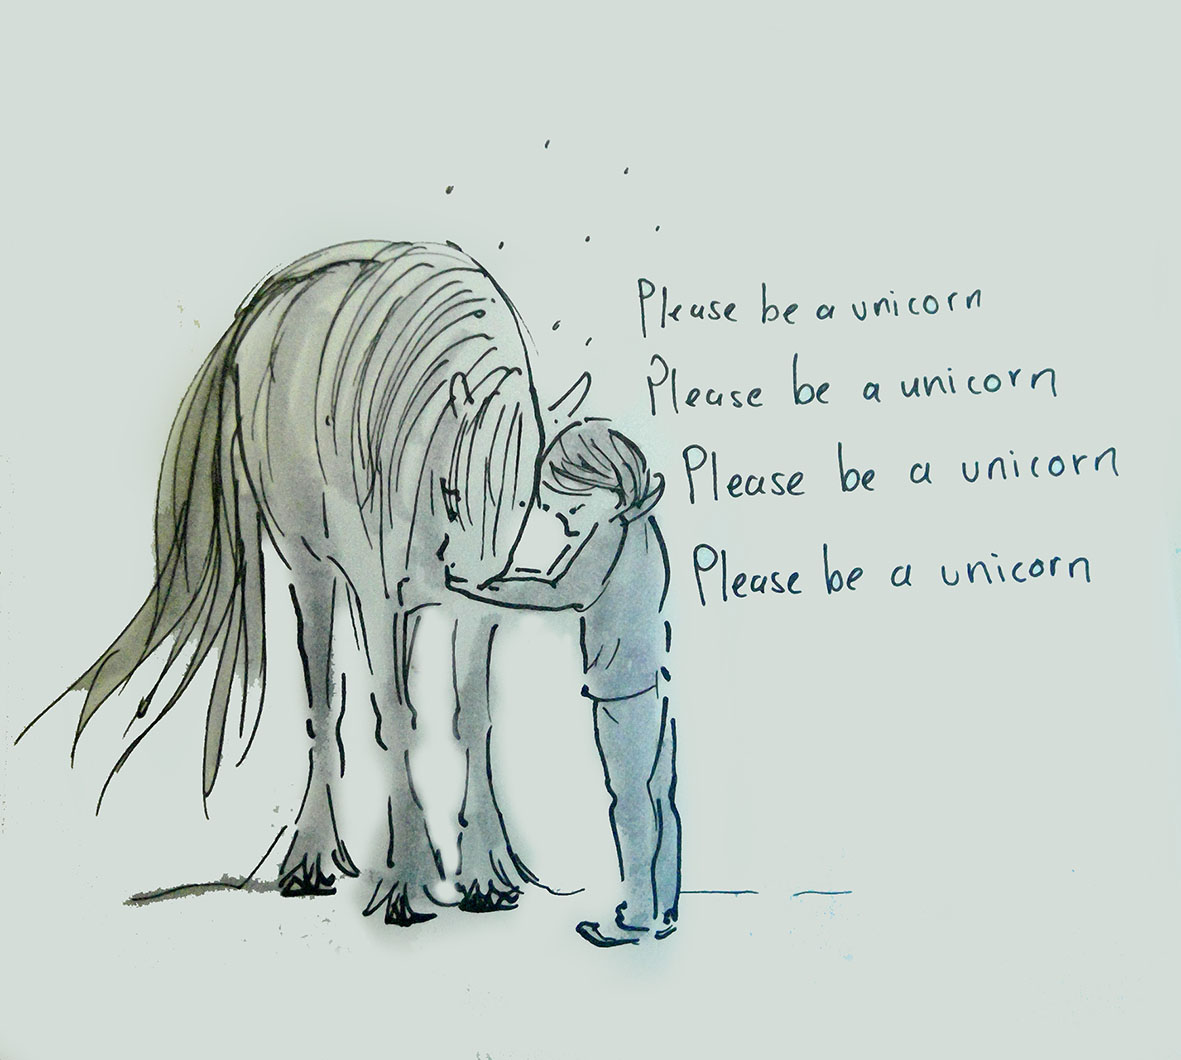 please be a unicorn